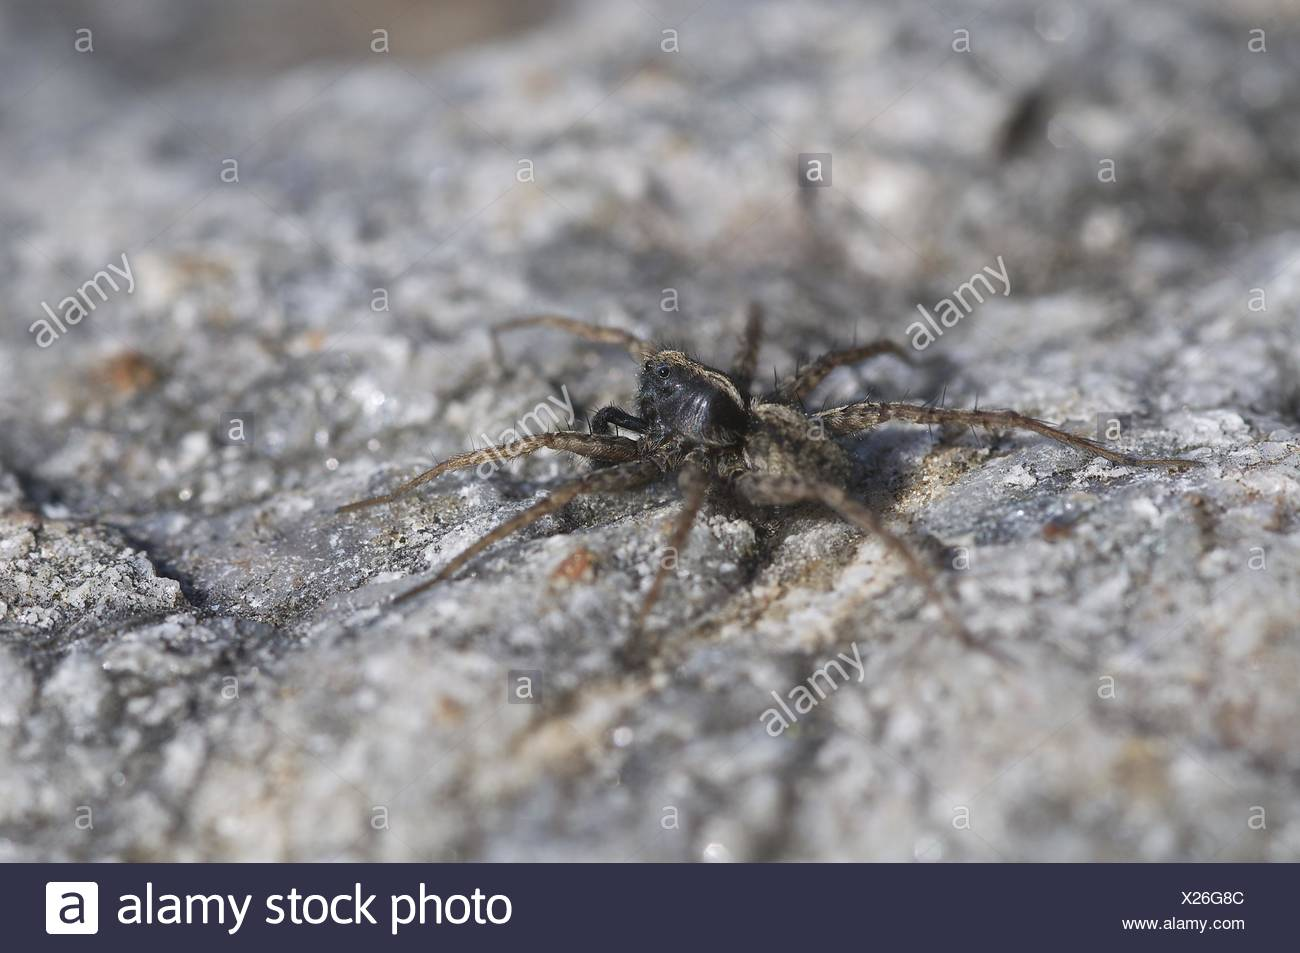 Wolf Spider, Male (Pardosa amentata) - Stock Image